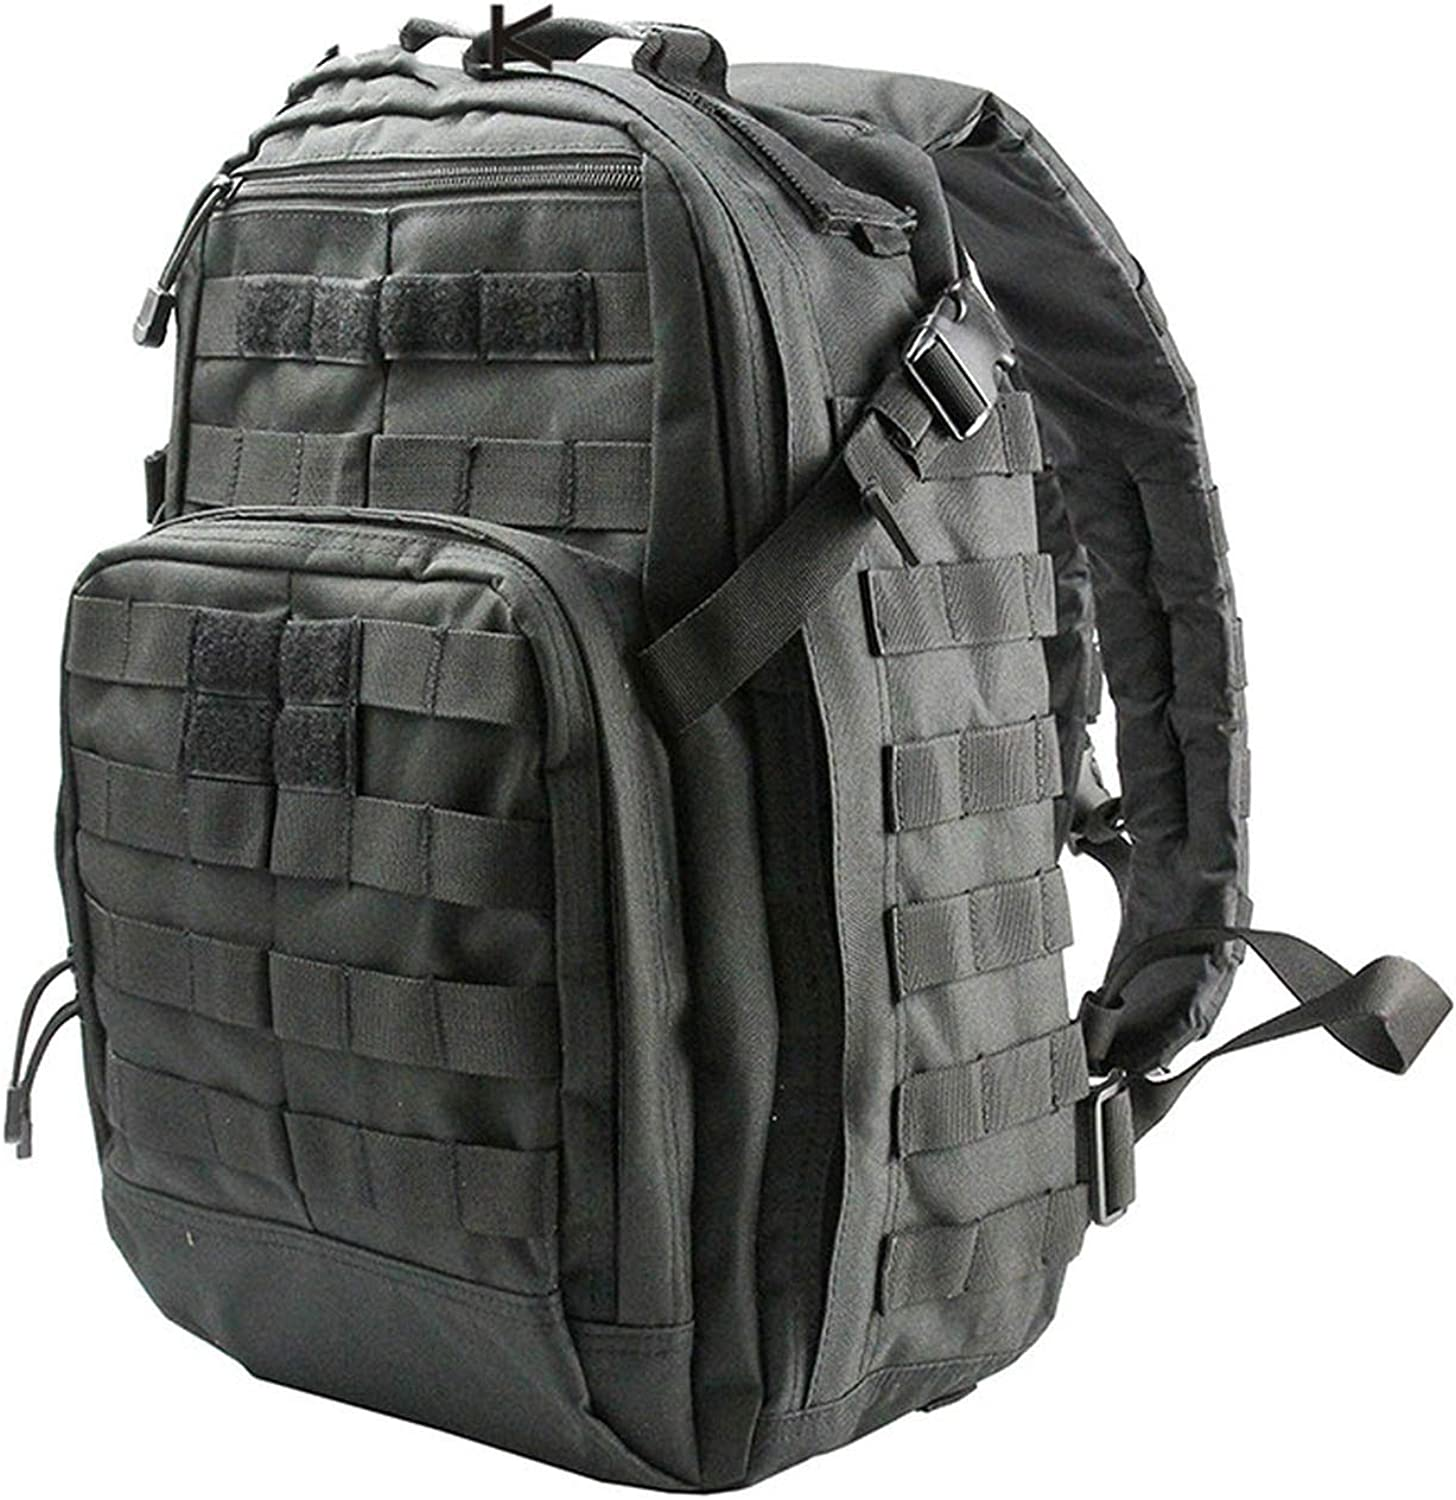 Tactical Backpack Military Bag 40L Large Nylon Outdoor Sports Bags Travel Camping Hiking Backpack